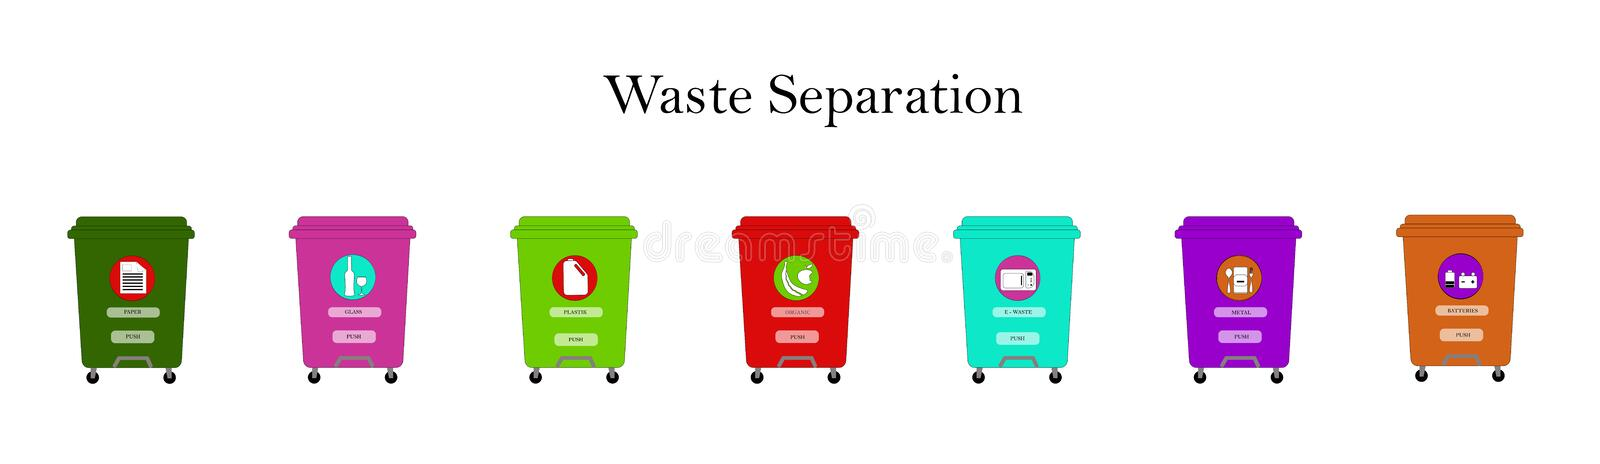 Multi-colored containers for separating waste into categories: plastic, paper, metal, glass, organic, electronics, batteries on a royalty free illustration